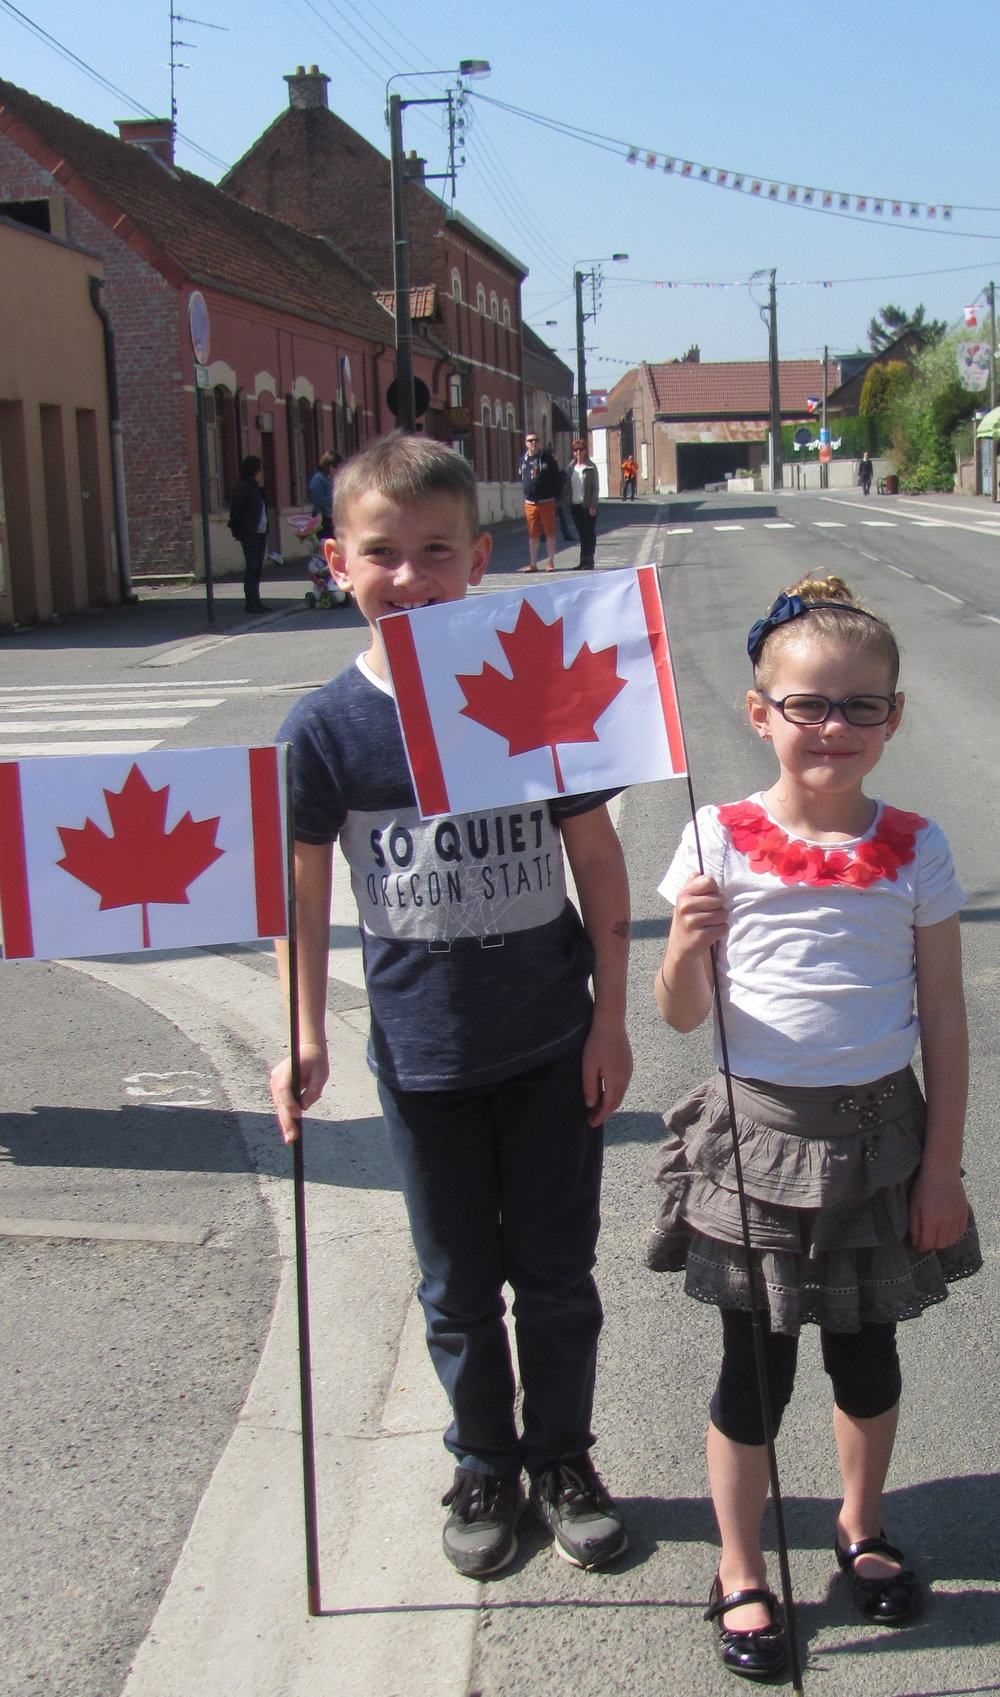 Home made Canadian flags are waved and poppies adorn parade wear.